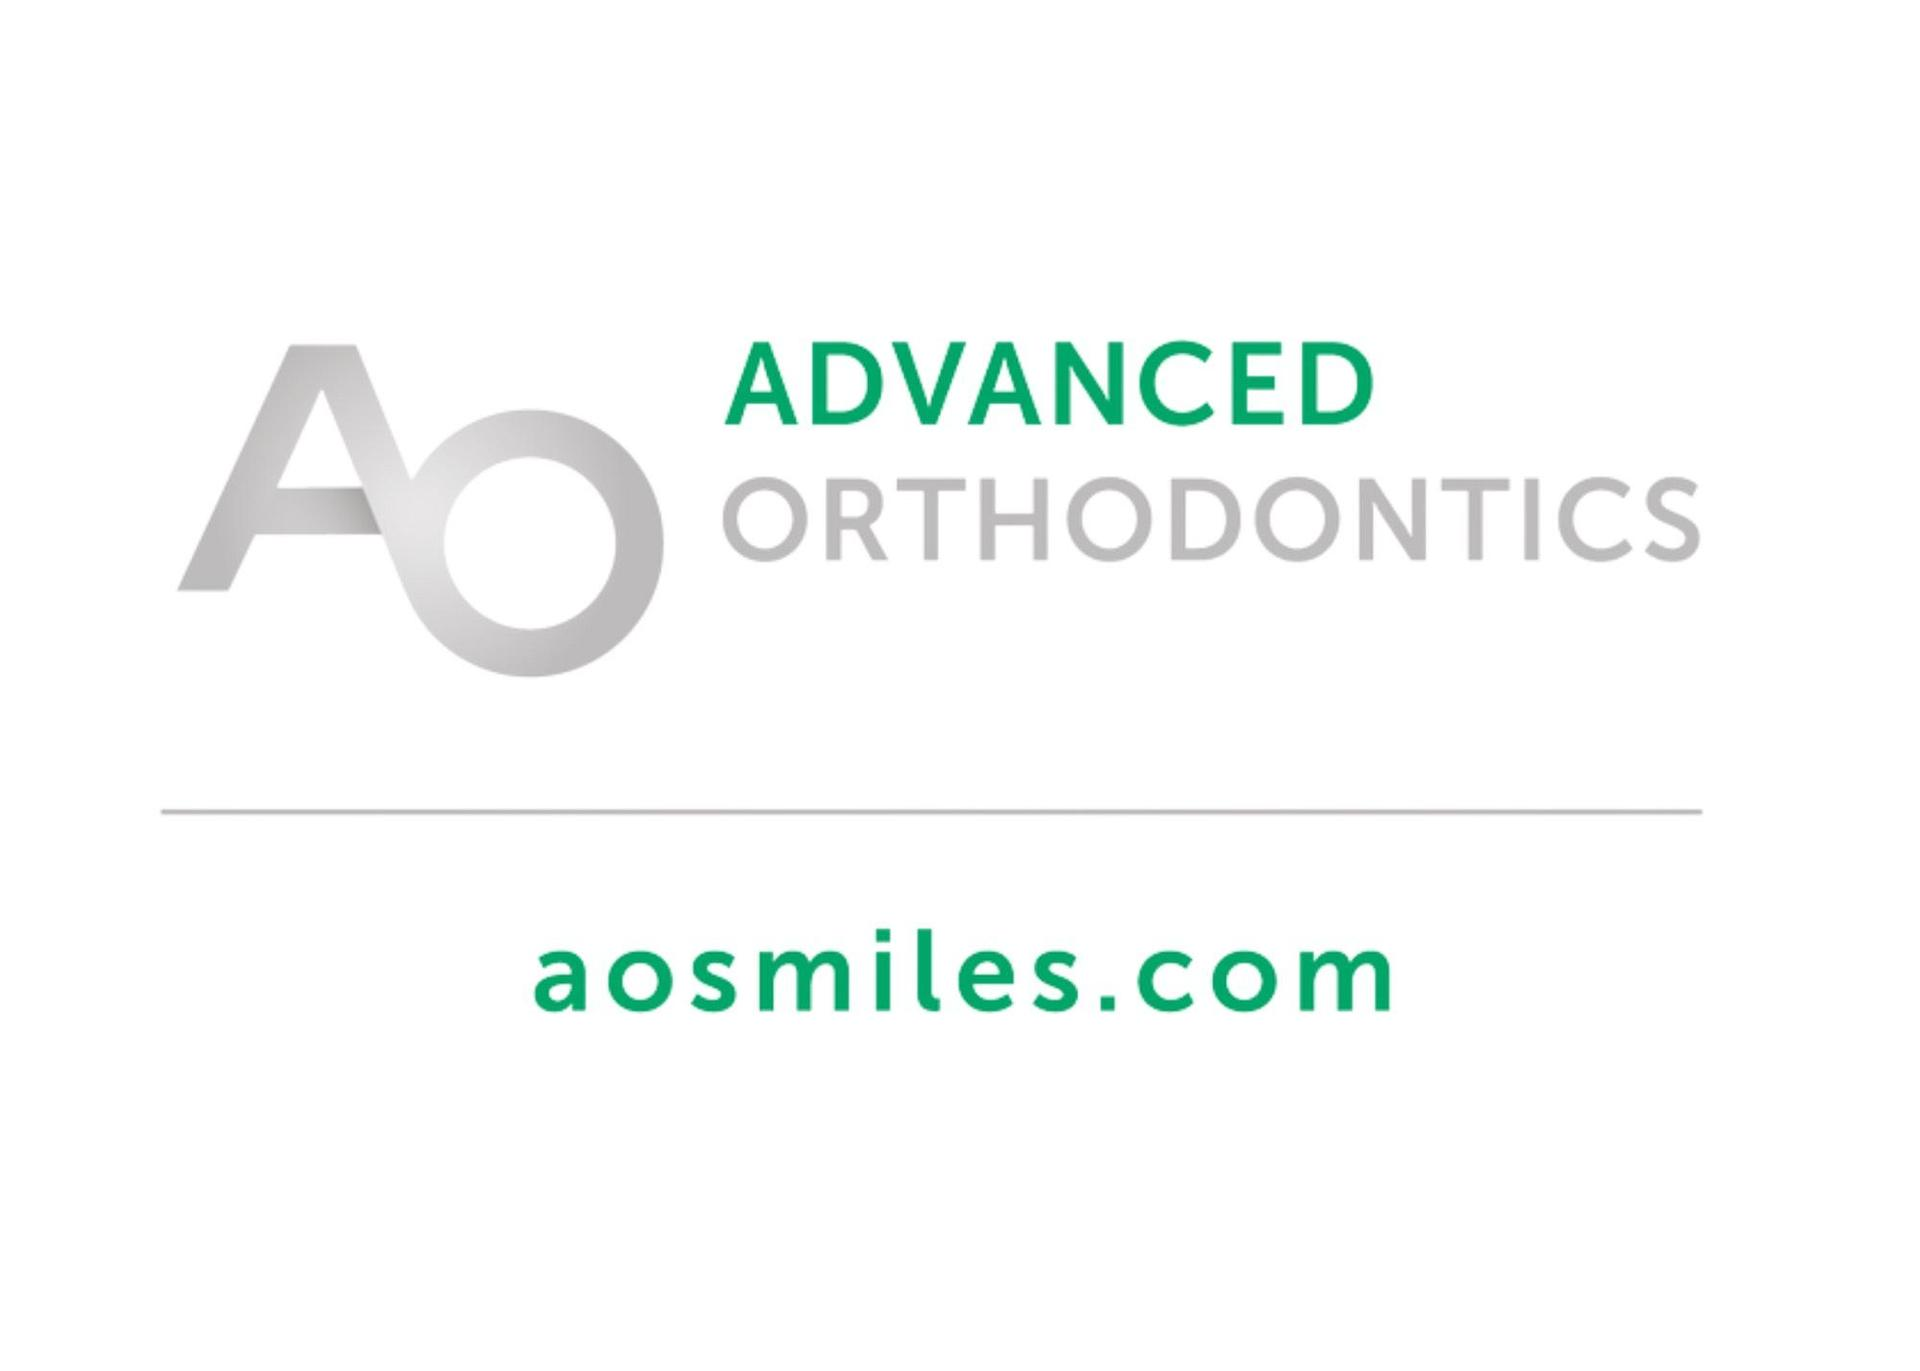 AO Orthodontis